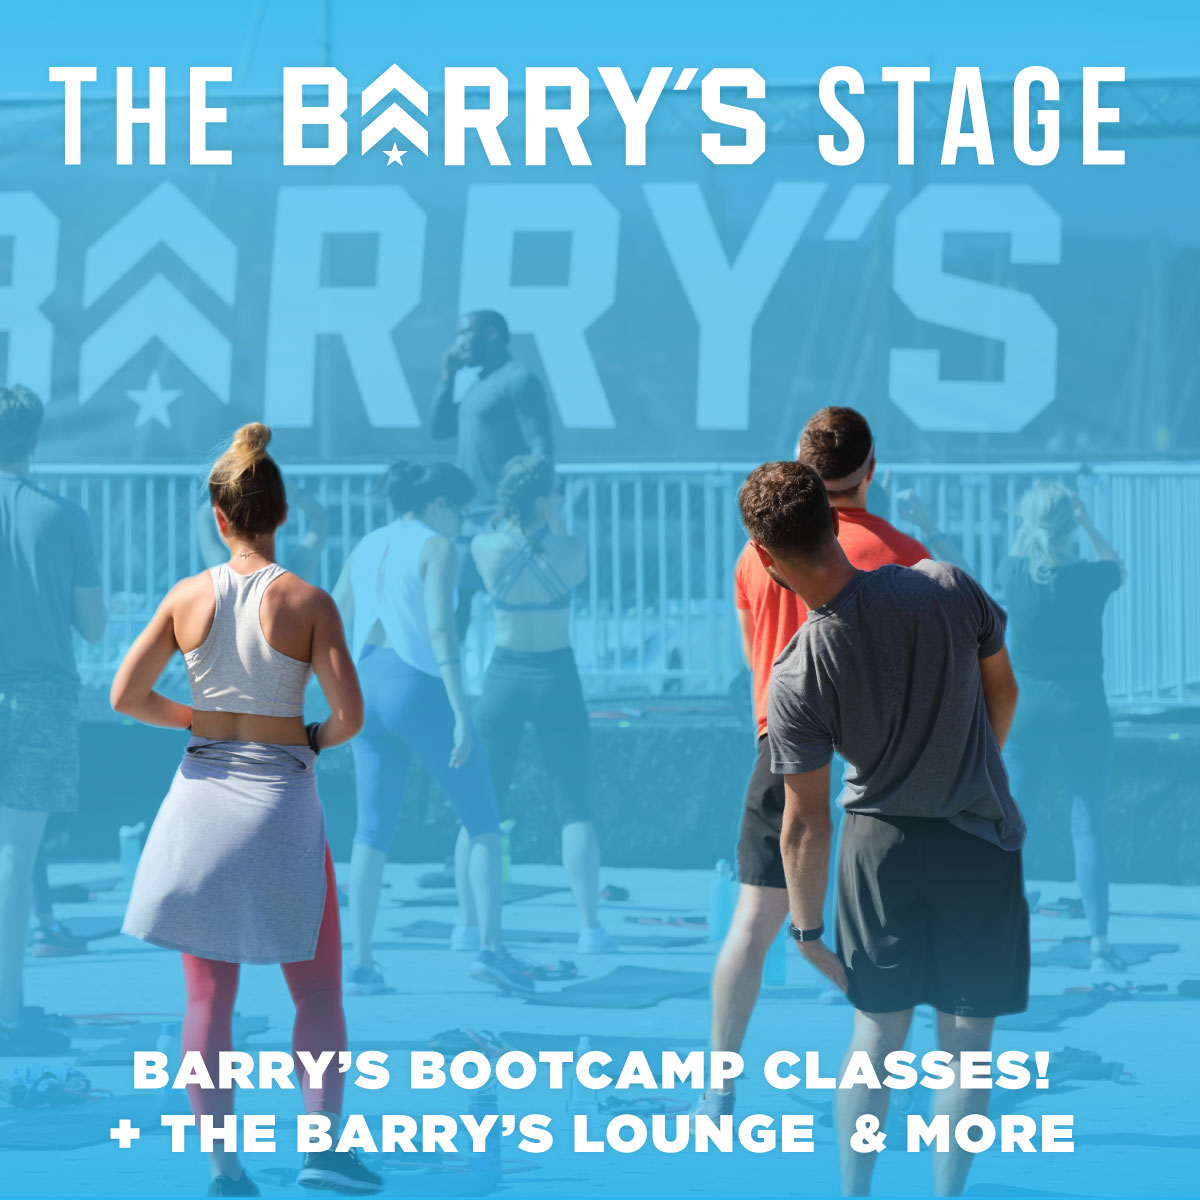 Barry's Bay Area is back to bring the heat! - Your tickets include access to classes at the Barry's Stage! Must Purchase tickets and Register for class!